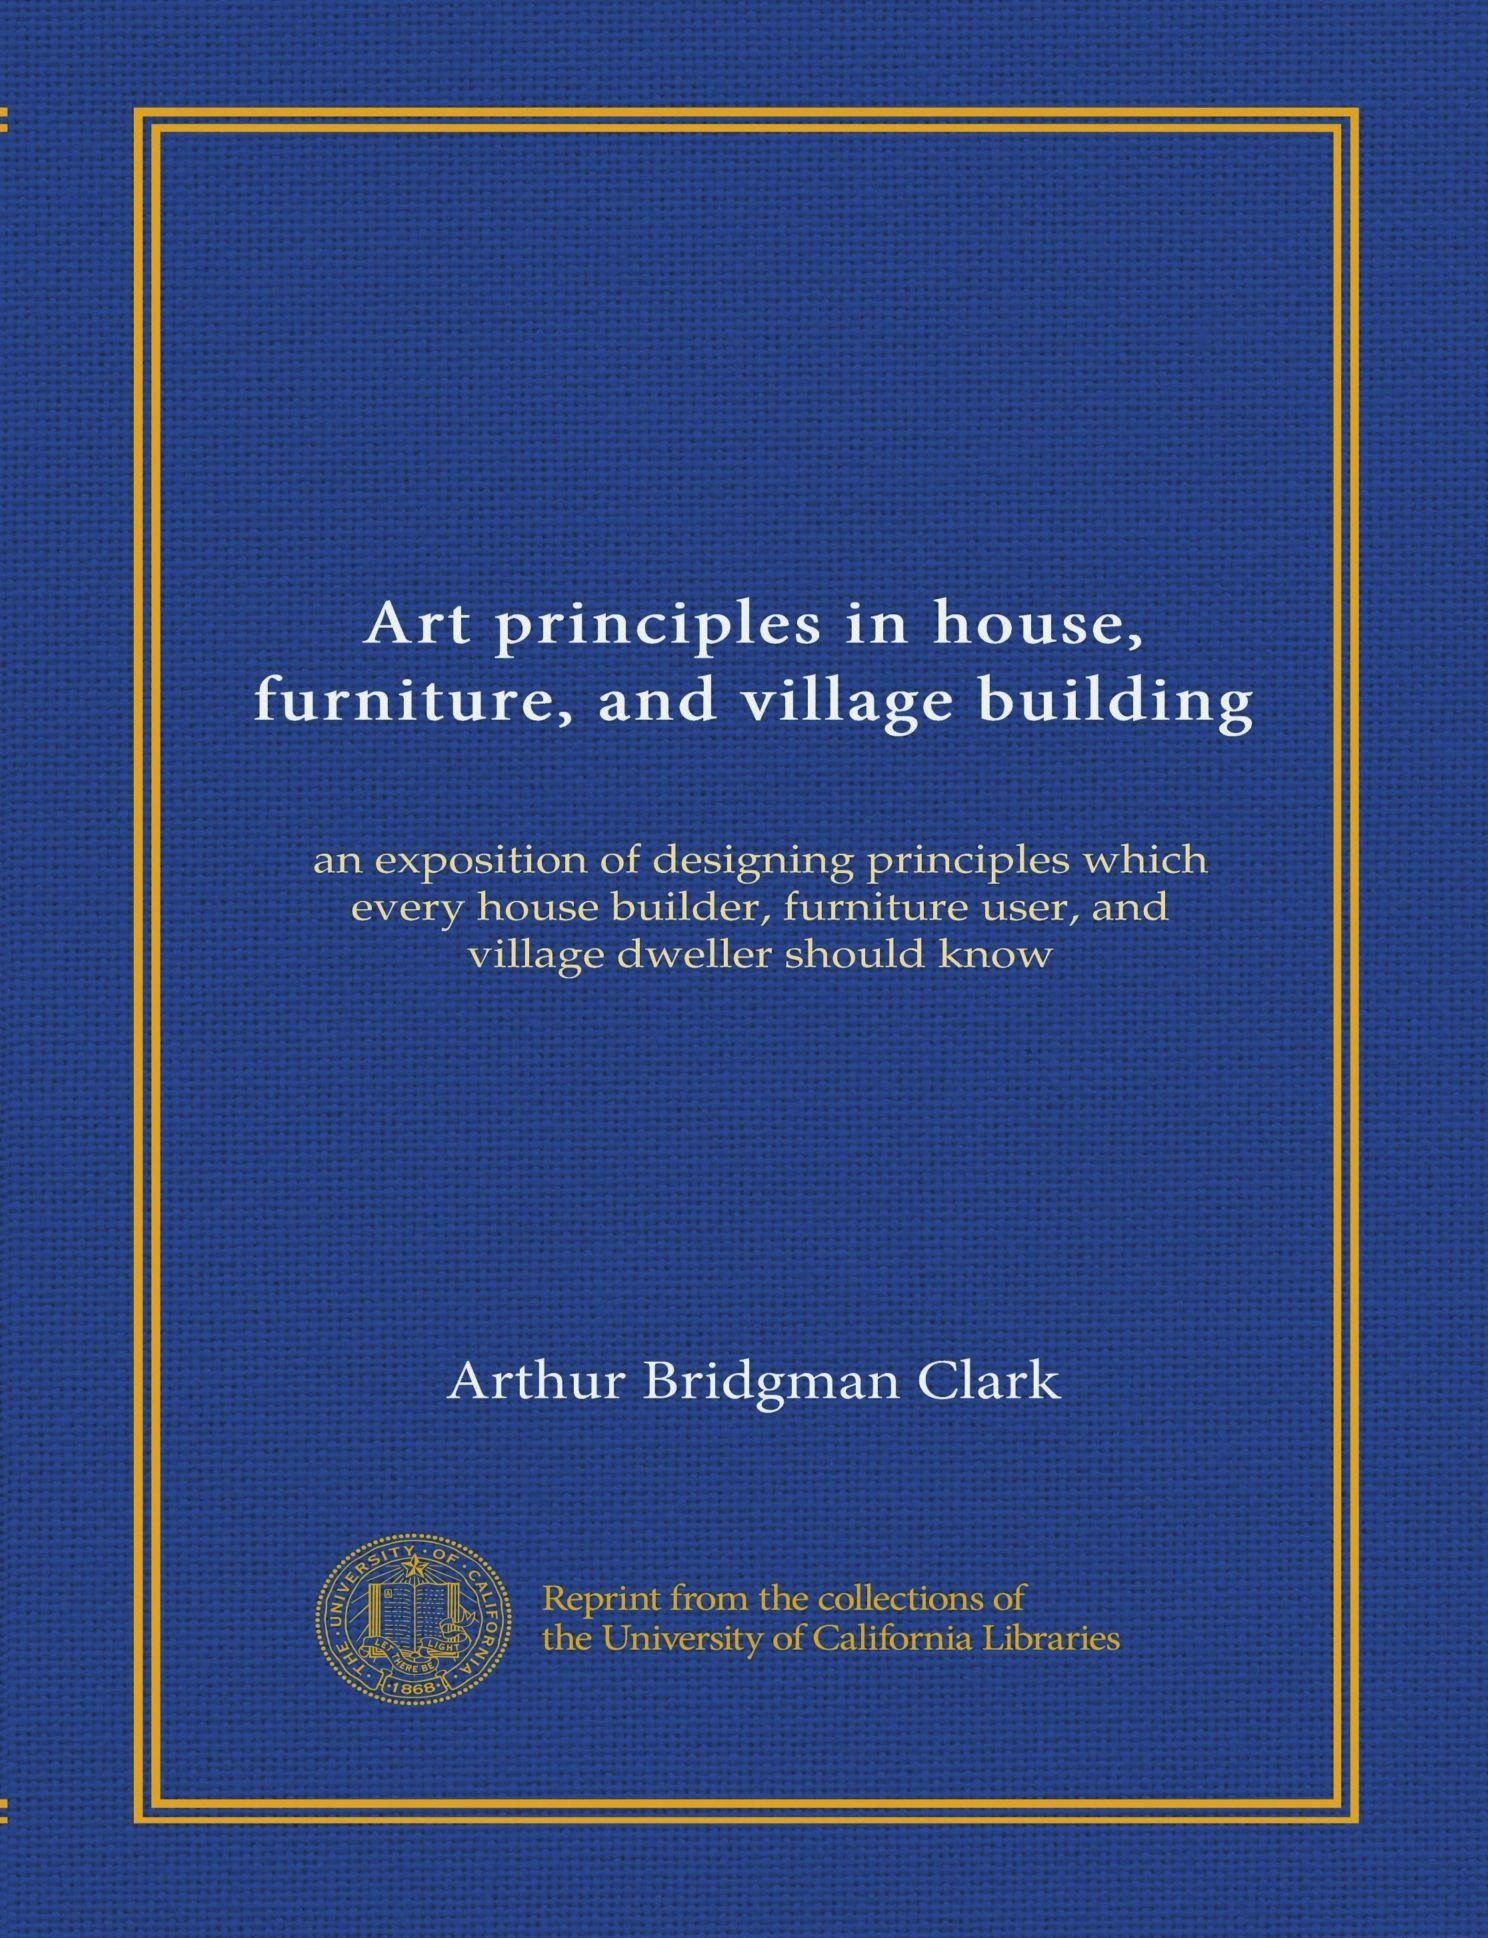 Read Online Art principles in house, furniture, and village building: an exposition of designing principles which every house builder, furniture user, and village dweller should know pdf